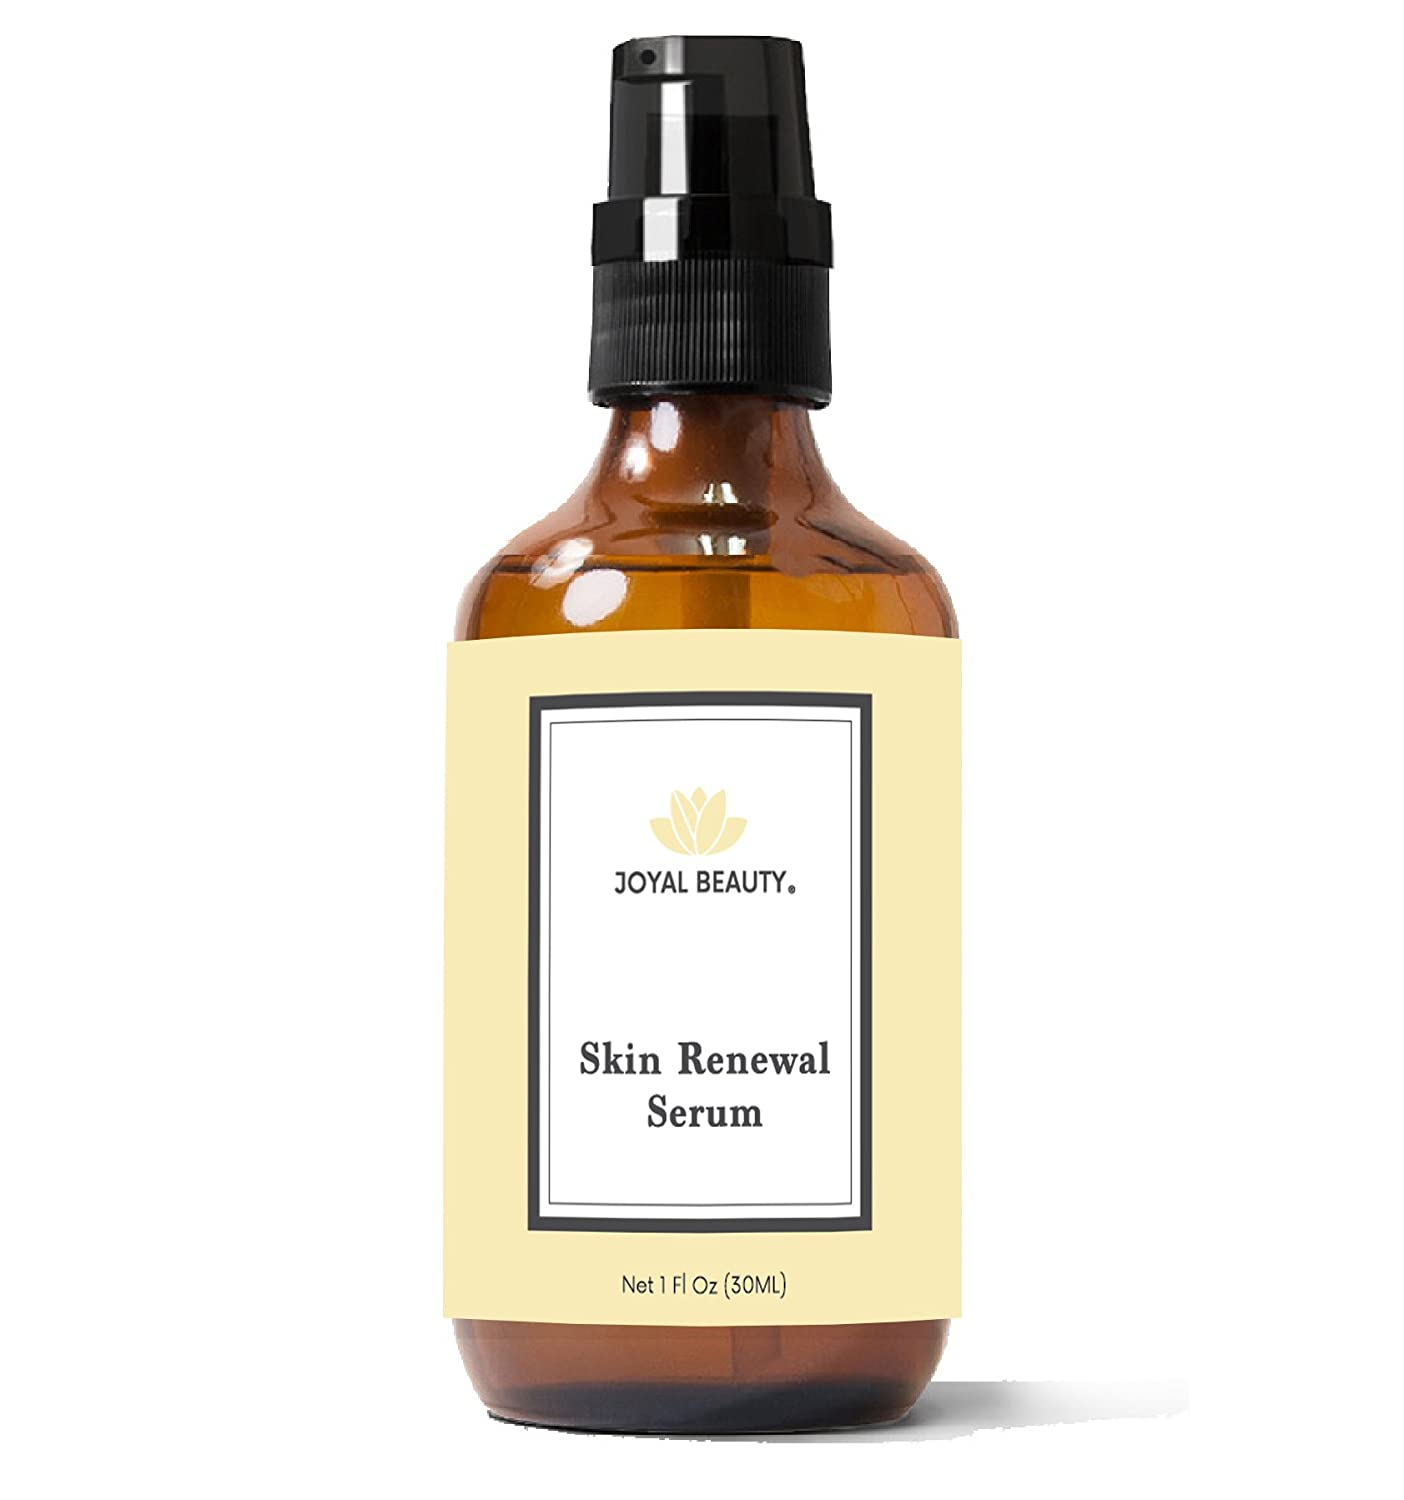 Joyal Beauty Organic Skin Renewal Serum for Face Skin Eyes. Best Intensive Firming Renewing Resurfacing Solution to Get Your Flawless Baby Soft Skin. Enriched with Honey, Royal Jelly, Bee Propolis.1 oz. SRS1